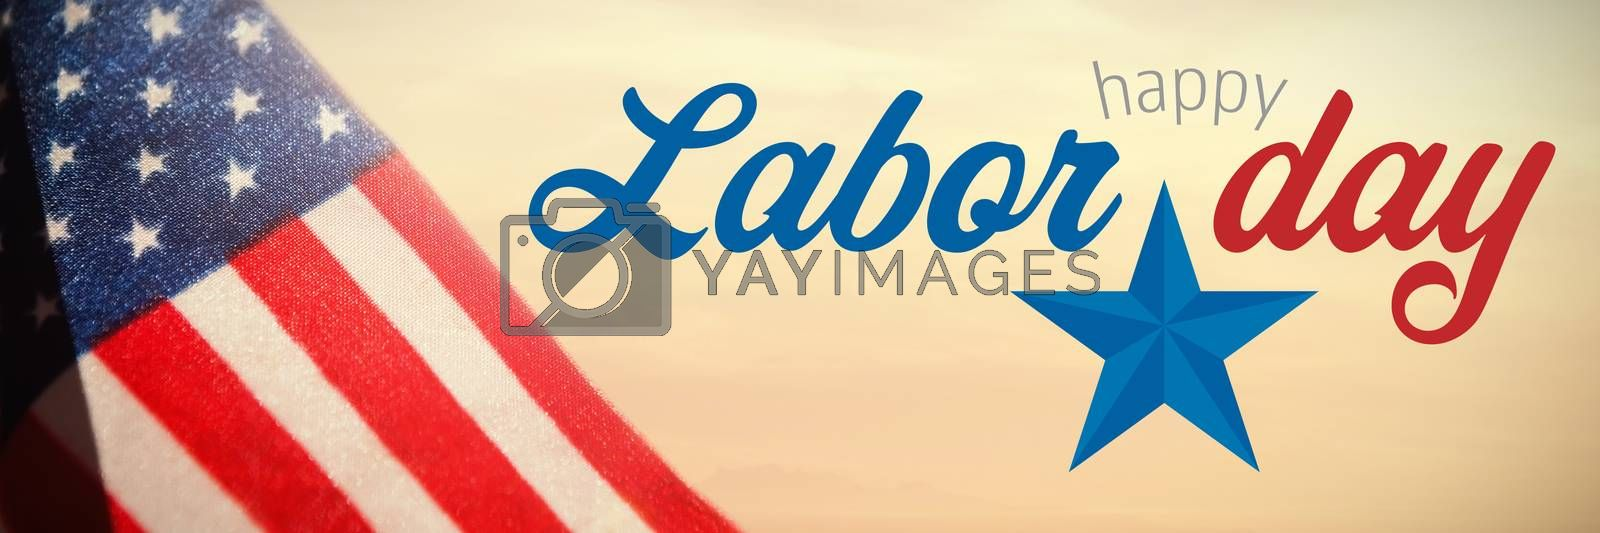 Composite image of digital composite image of happy labor day text with star shape by Wavebreakmedia